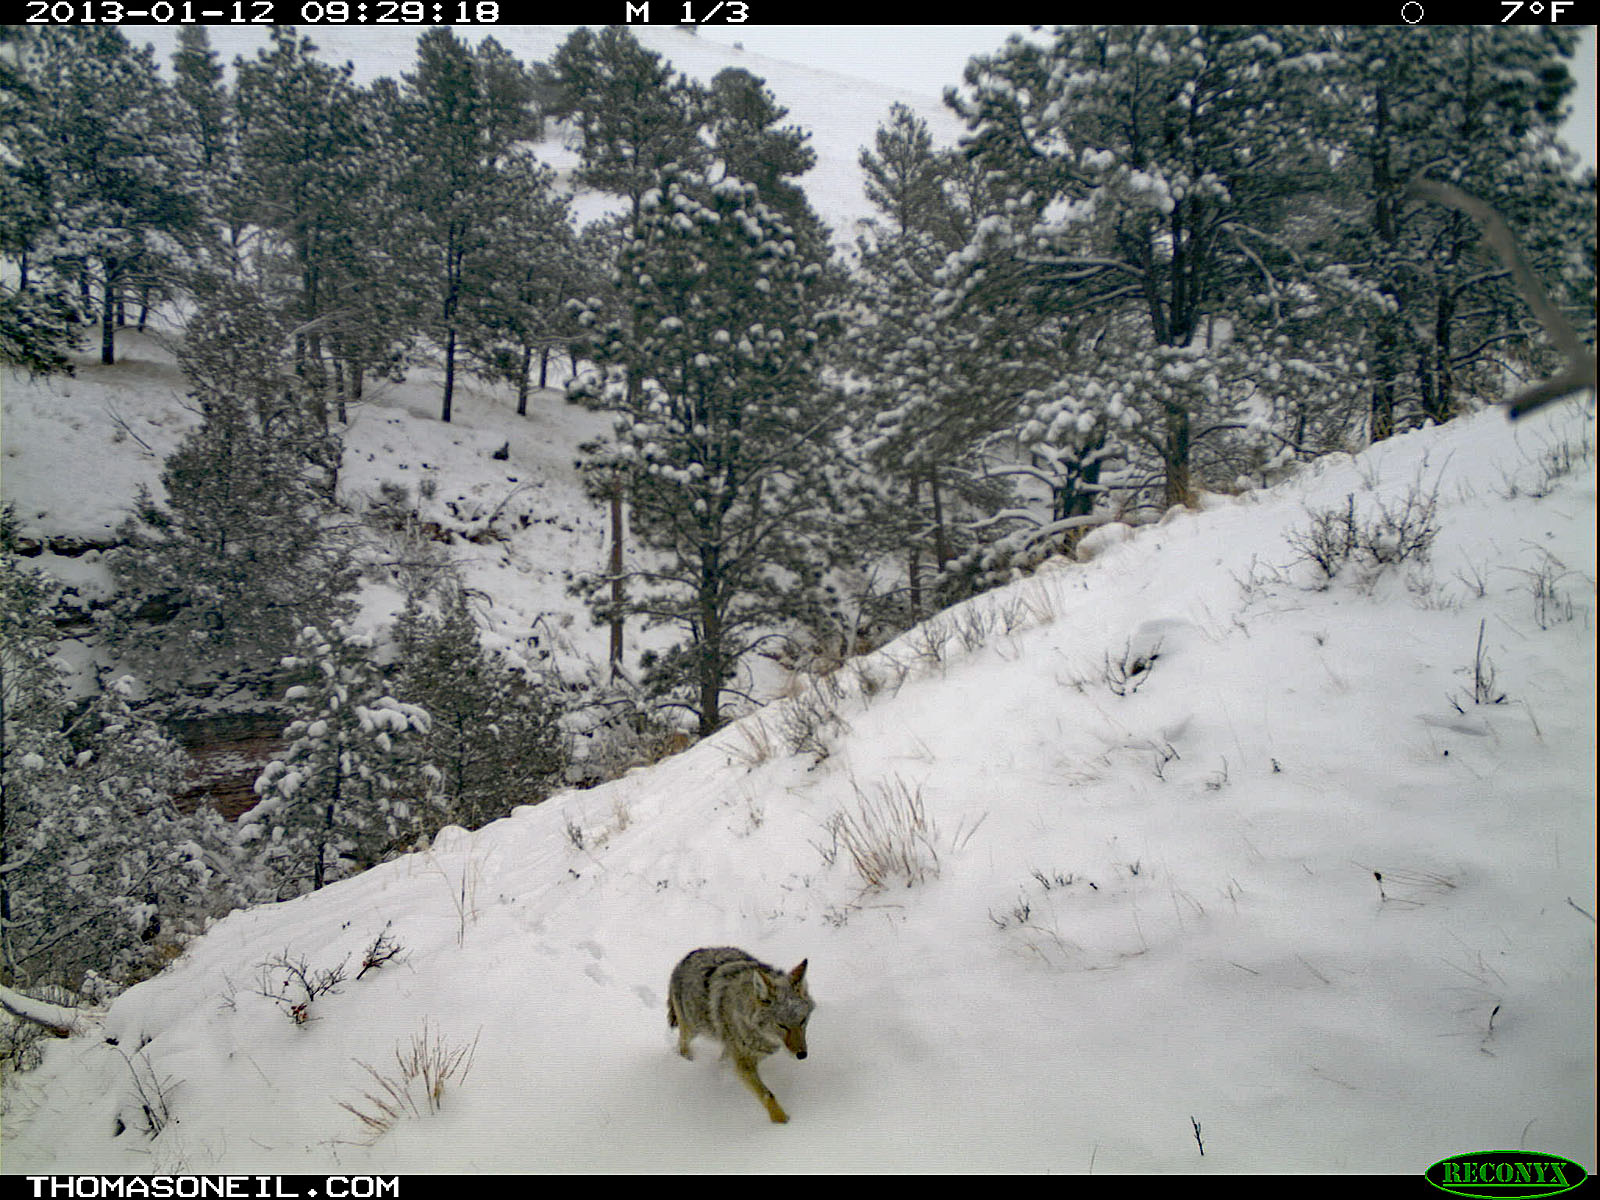 Coyote trudges through the snow, trailcam photo from Jan. 12, 2013, Wind Cave National Park, South Dakota.  Click for next photo.